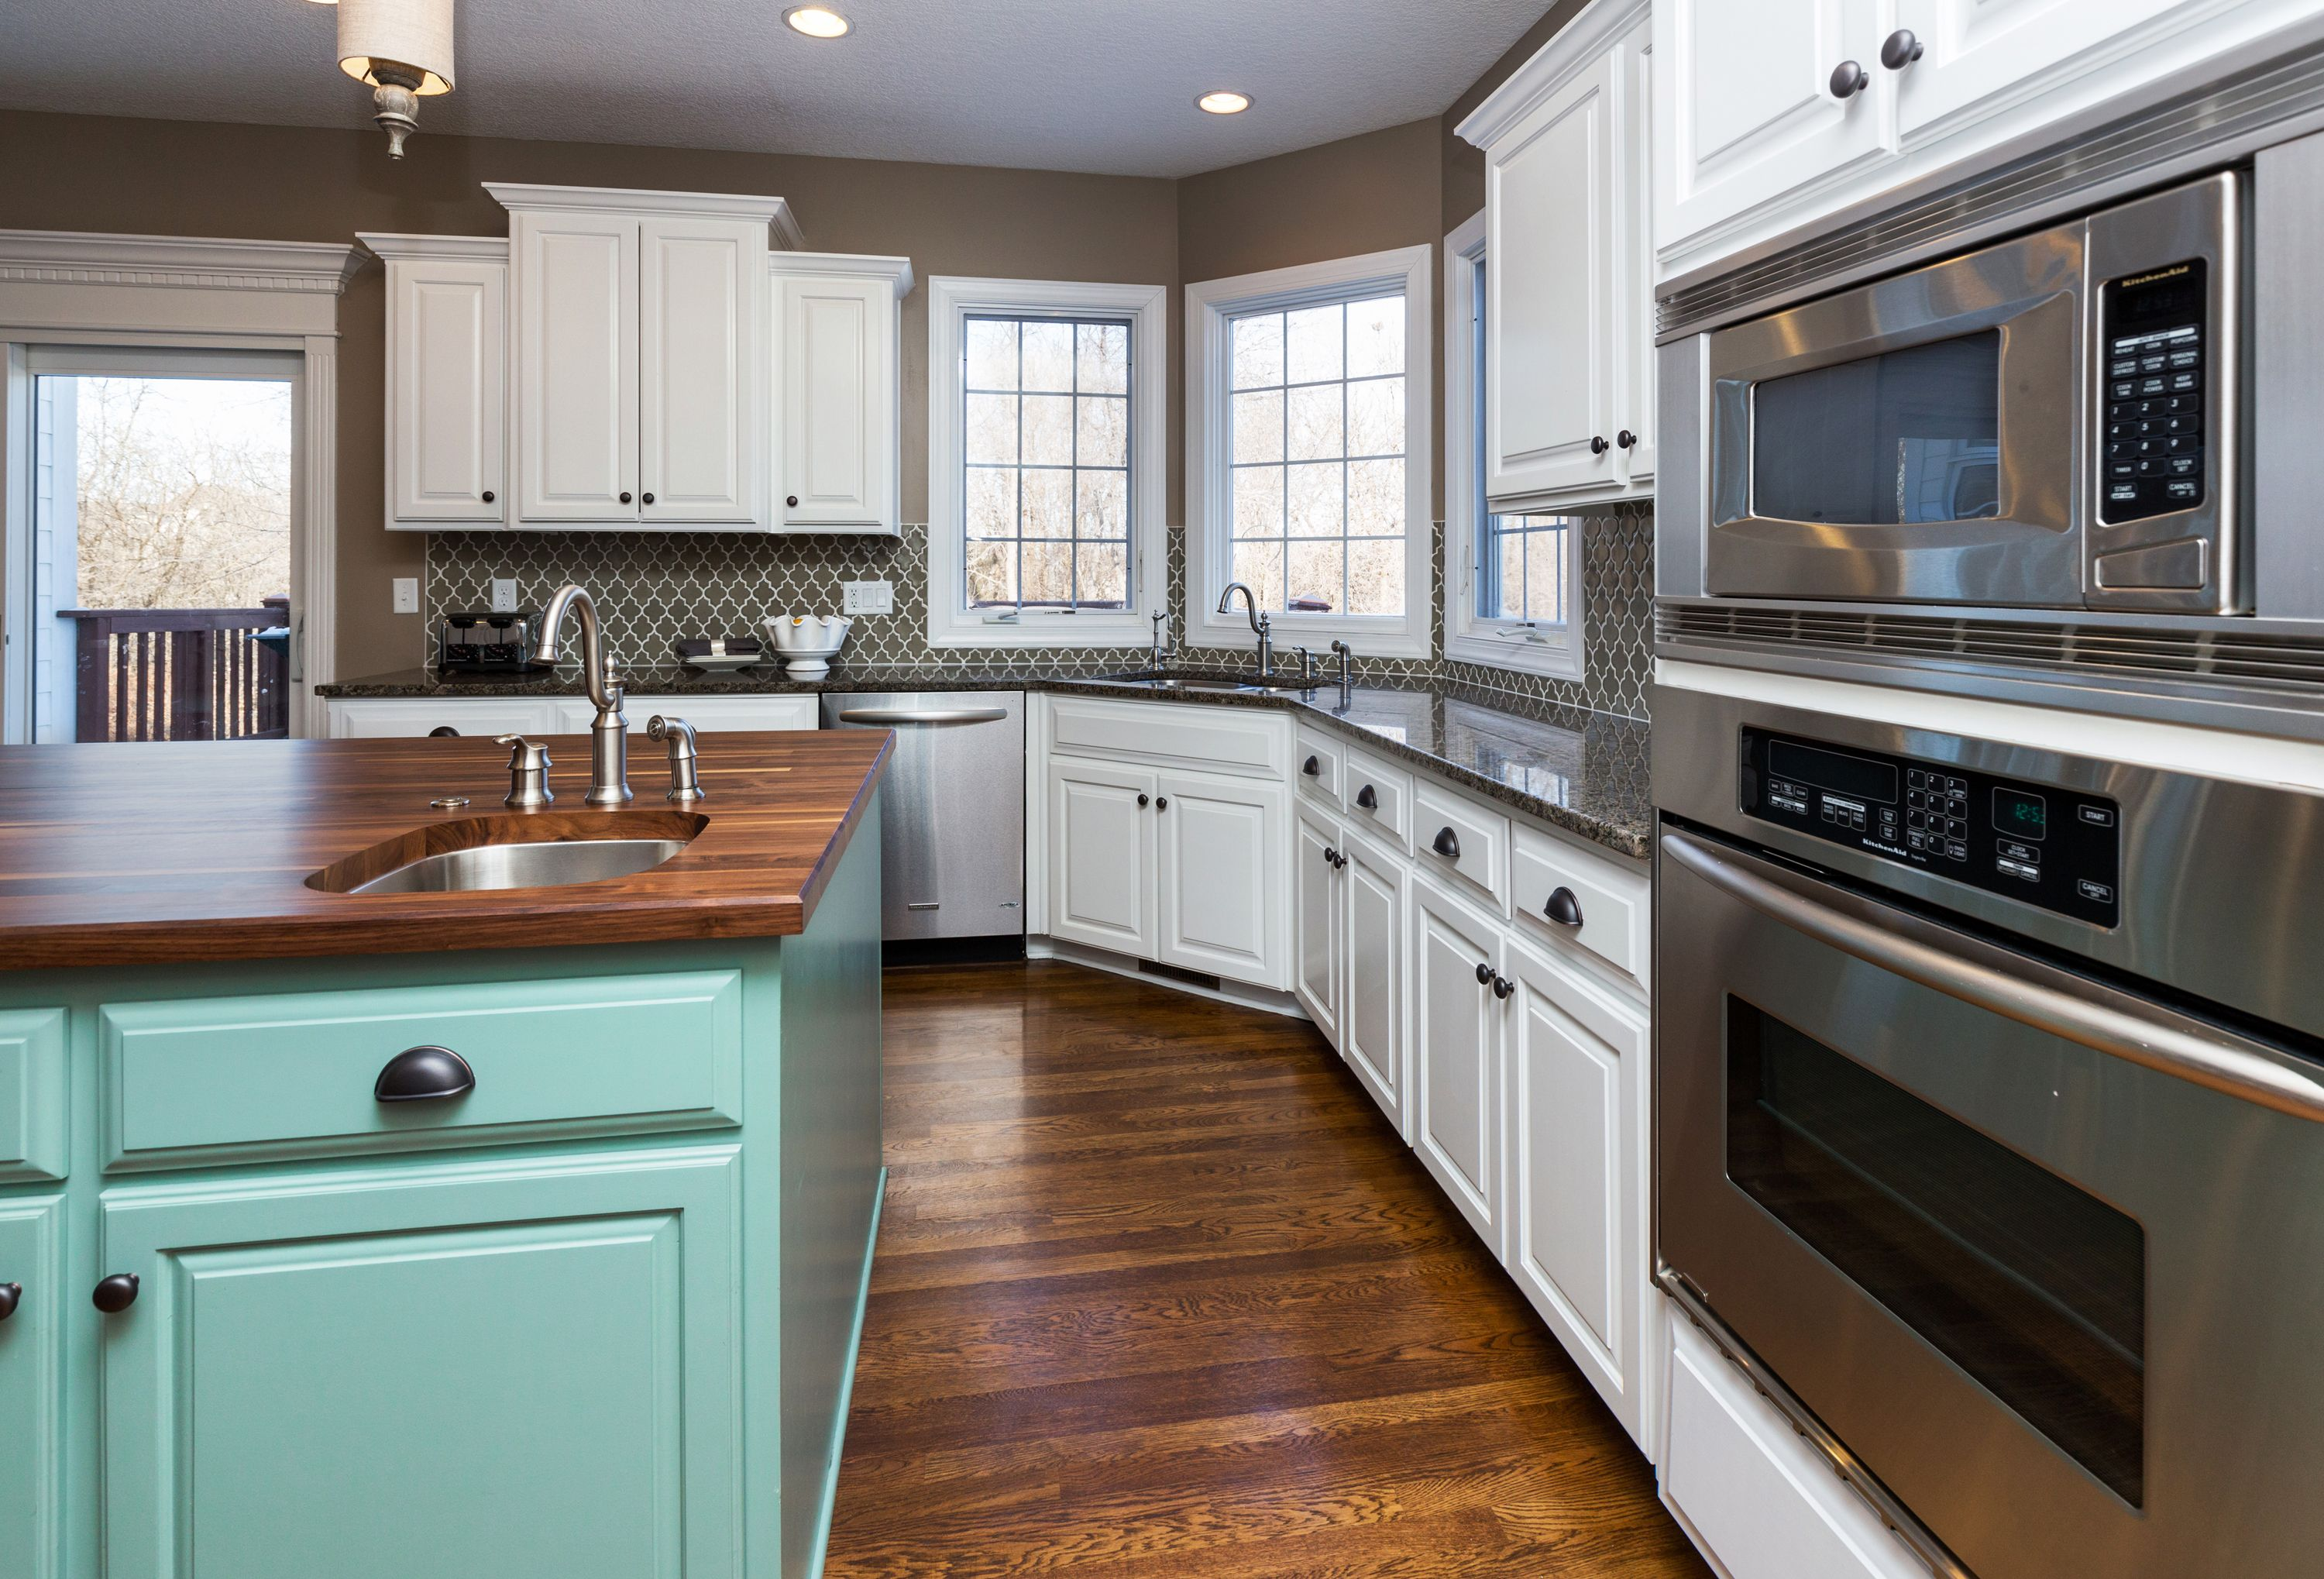 The Blue Island With Butcher Block Top Is A Focal Point In This Neutral Kitchen Home Remodeling Neutral Kitchen Home